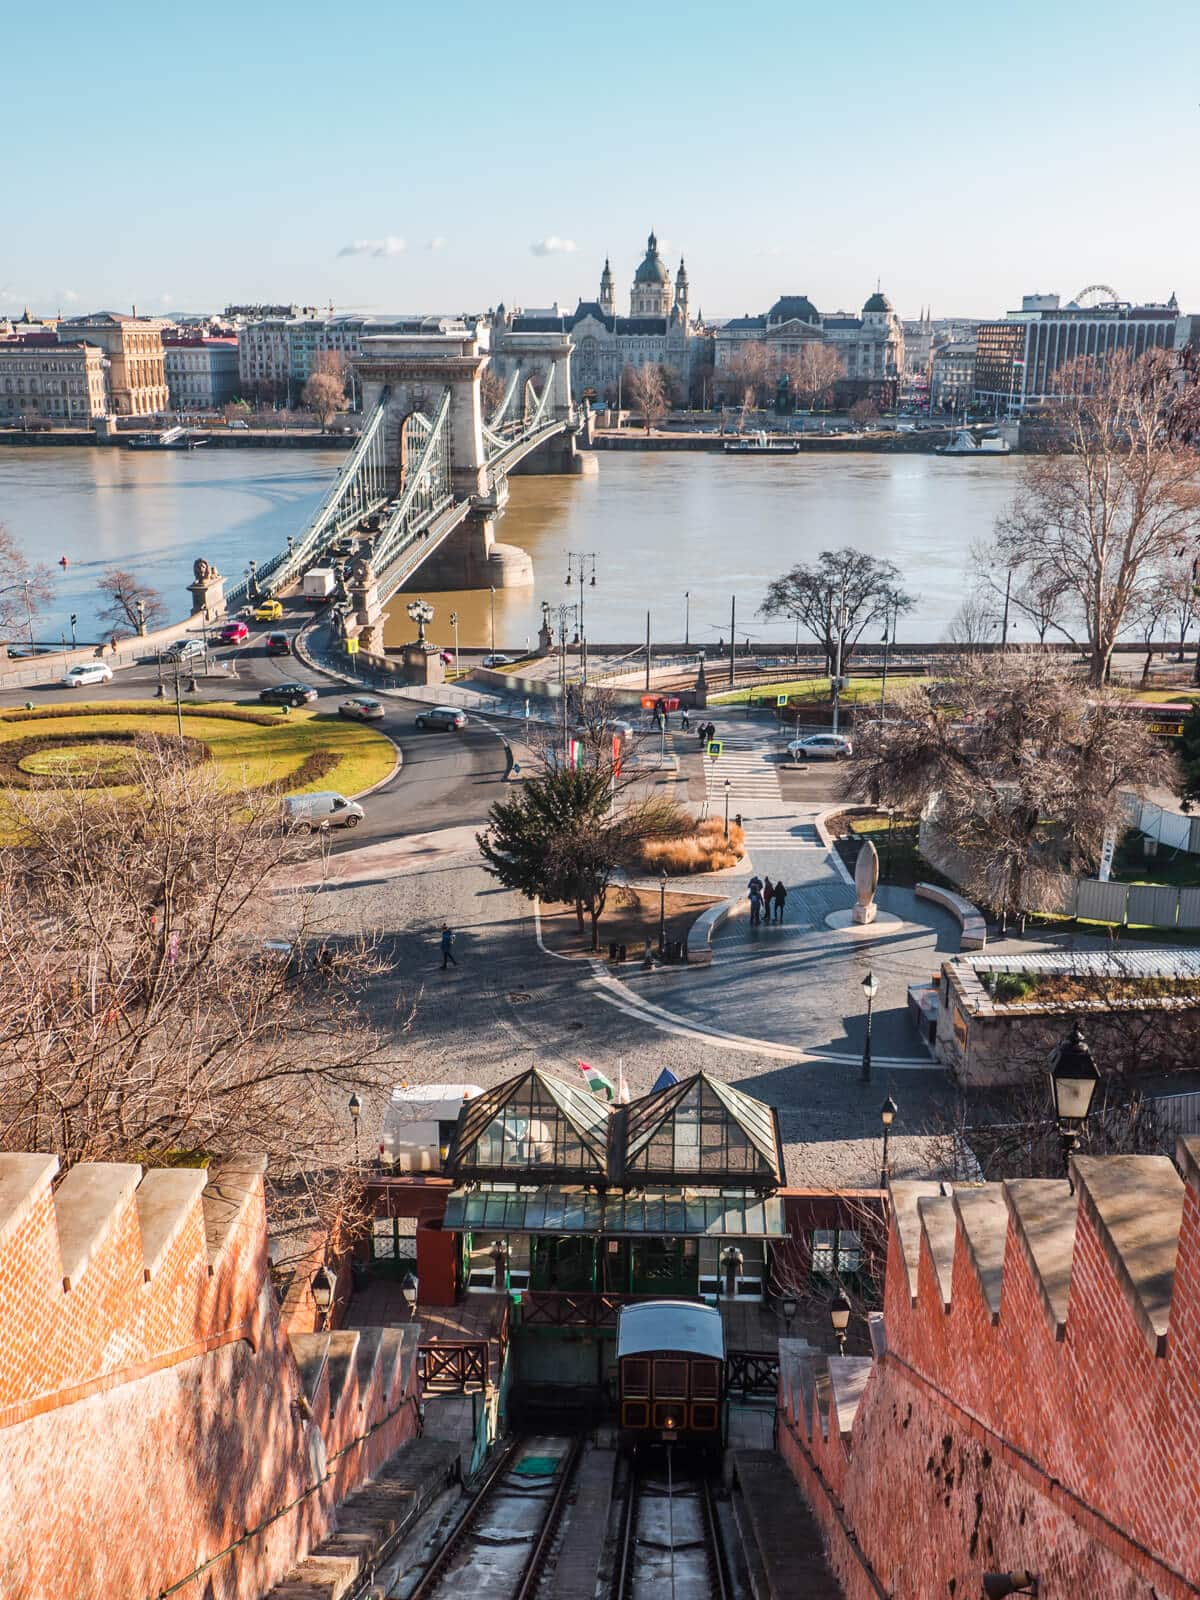 Budapest Instagrammable Places - Castle Hill Funicular